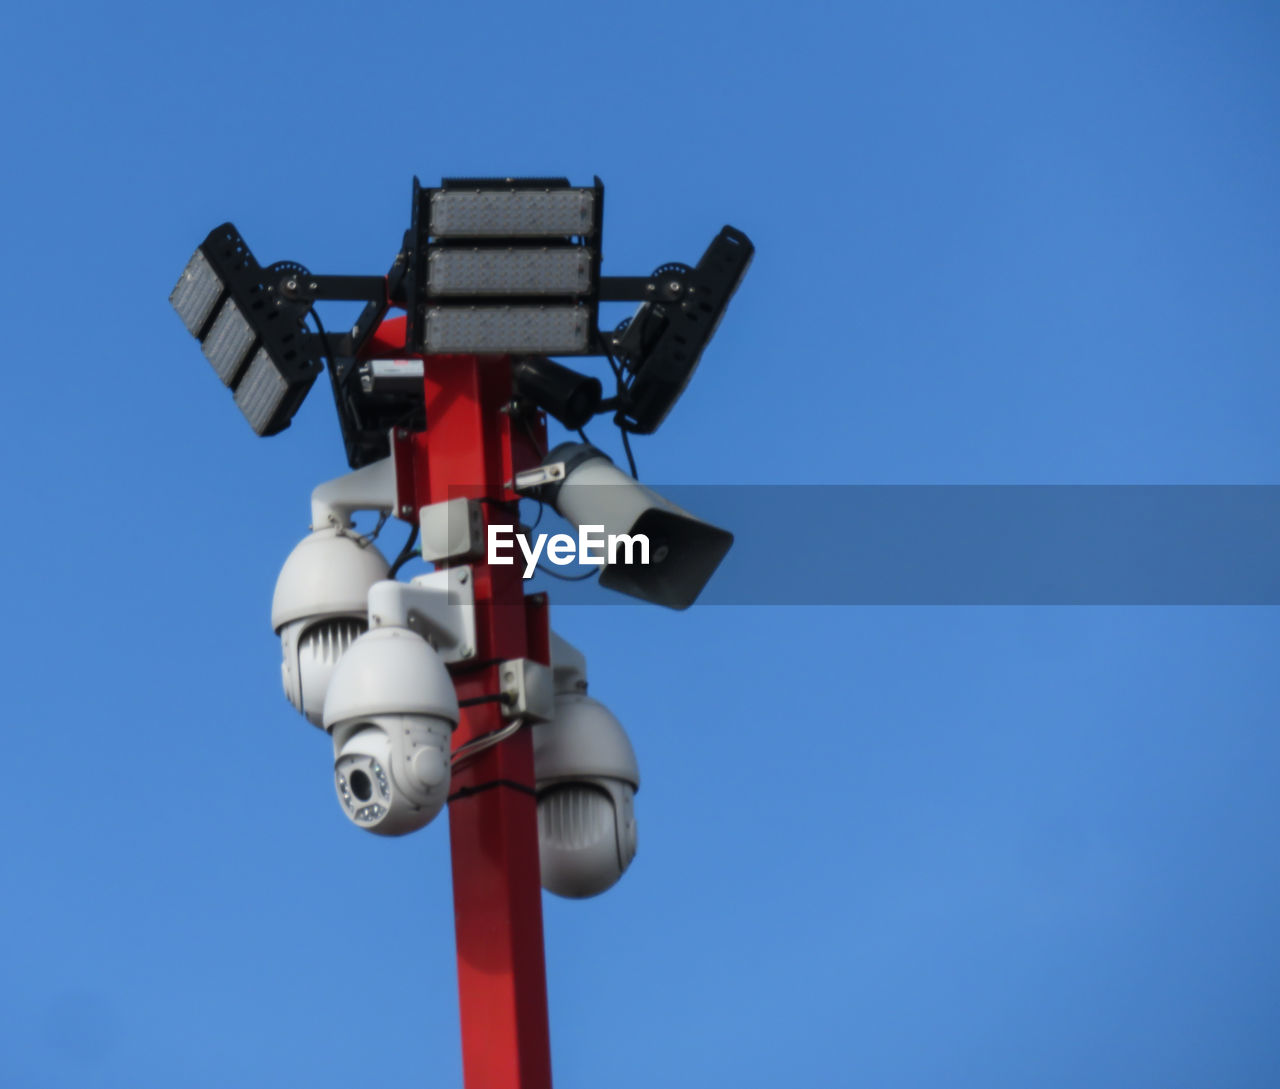 clear sky, sky, low angle view, blue, day, no people, copy space, nature, technology, lighting equipment, outdoors, sunlight, communication, red, sign, light, pole, transportation, signal, white color, crossing sign